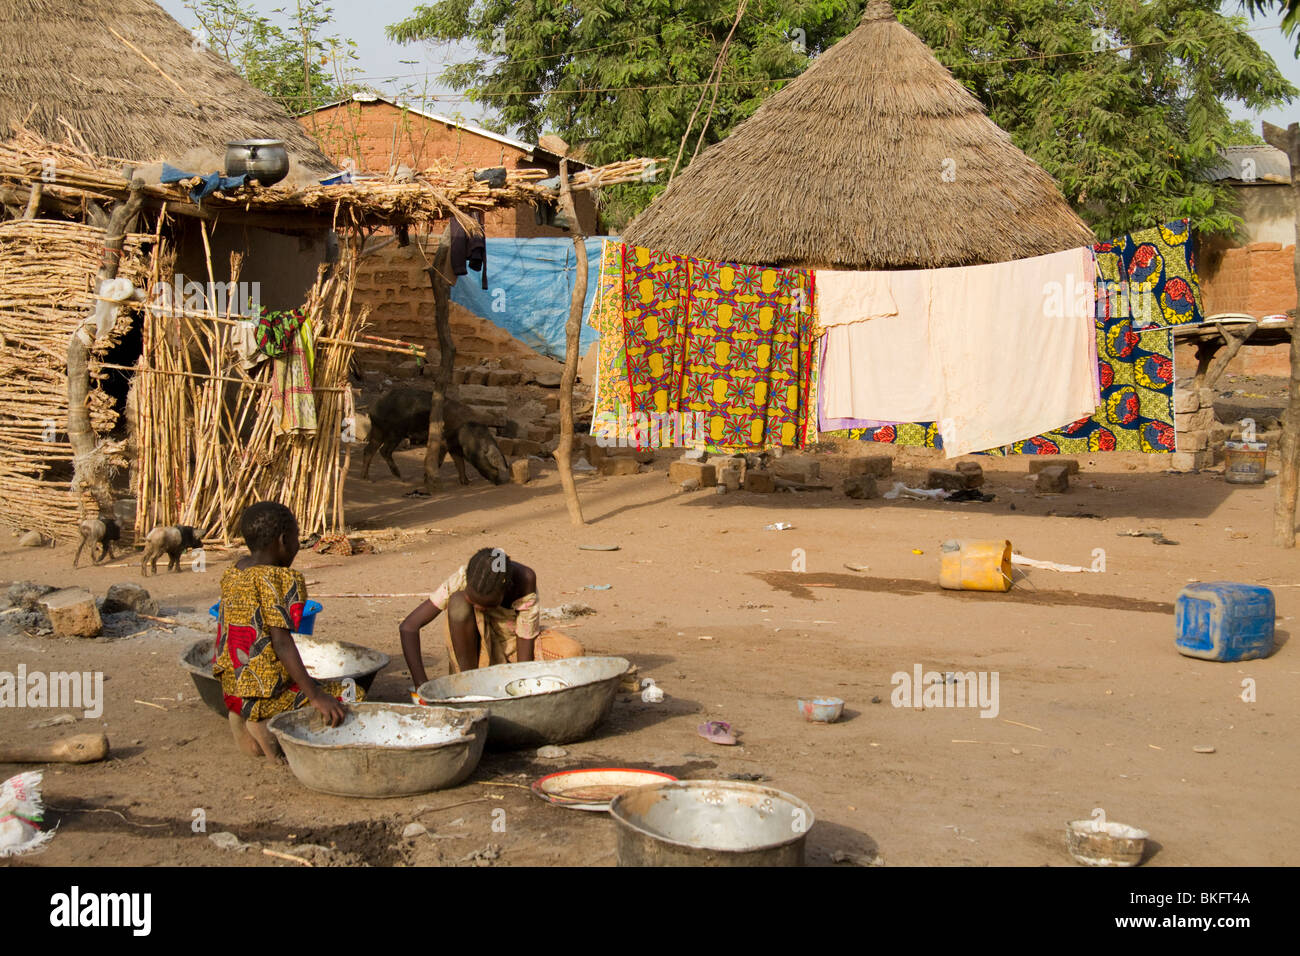 A Cameroonian village. - Stock Image